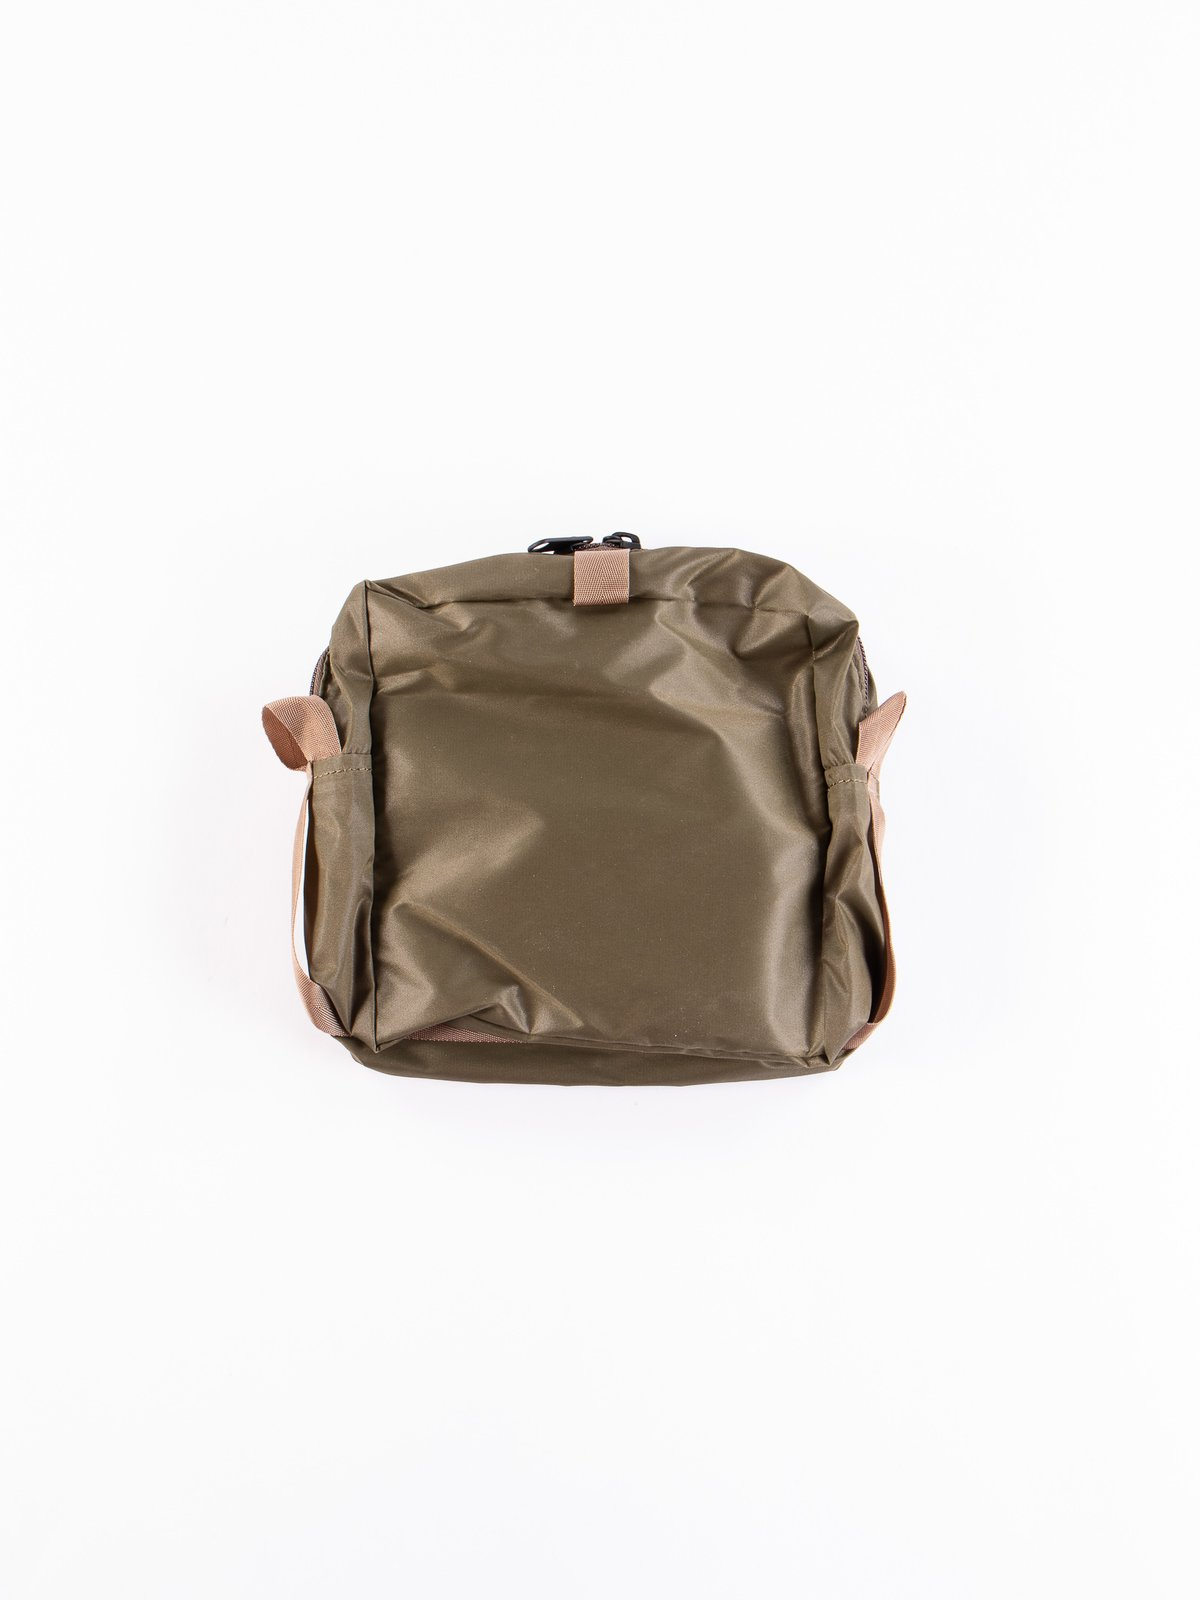 Olive Drab Snack Pack 09806 Pouch Small - Image 3